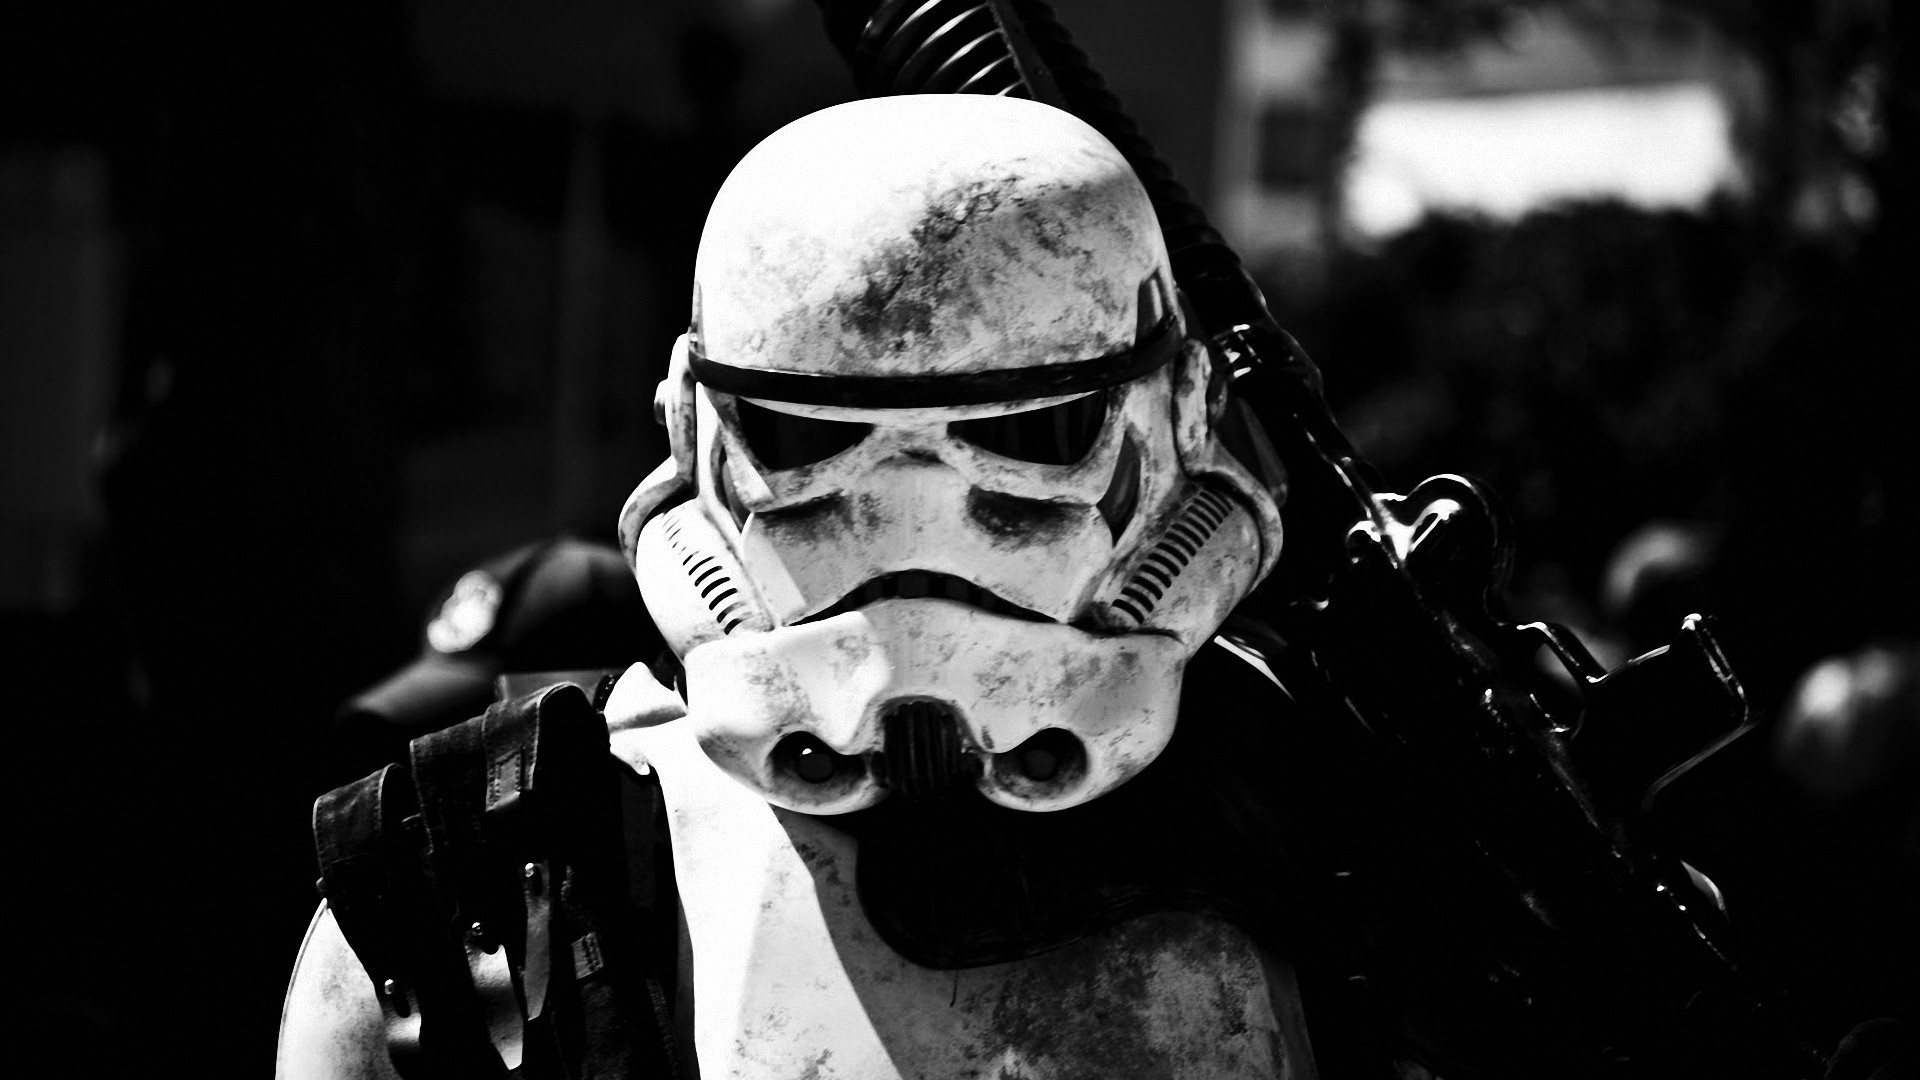 4k Wallpaper Stormtrooper Star Wars 10691 Hd Wallpaper